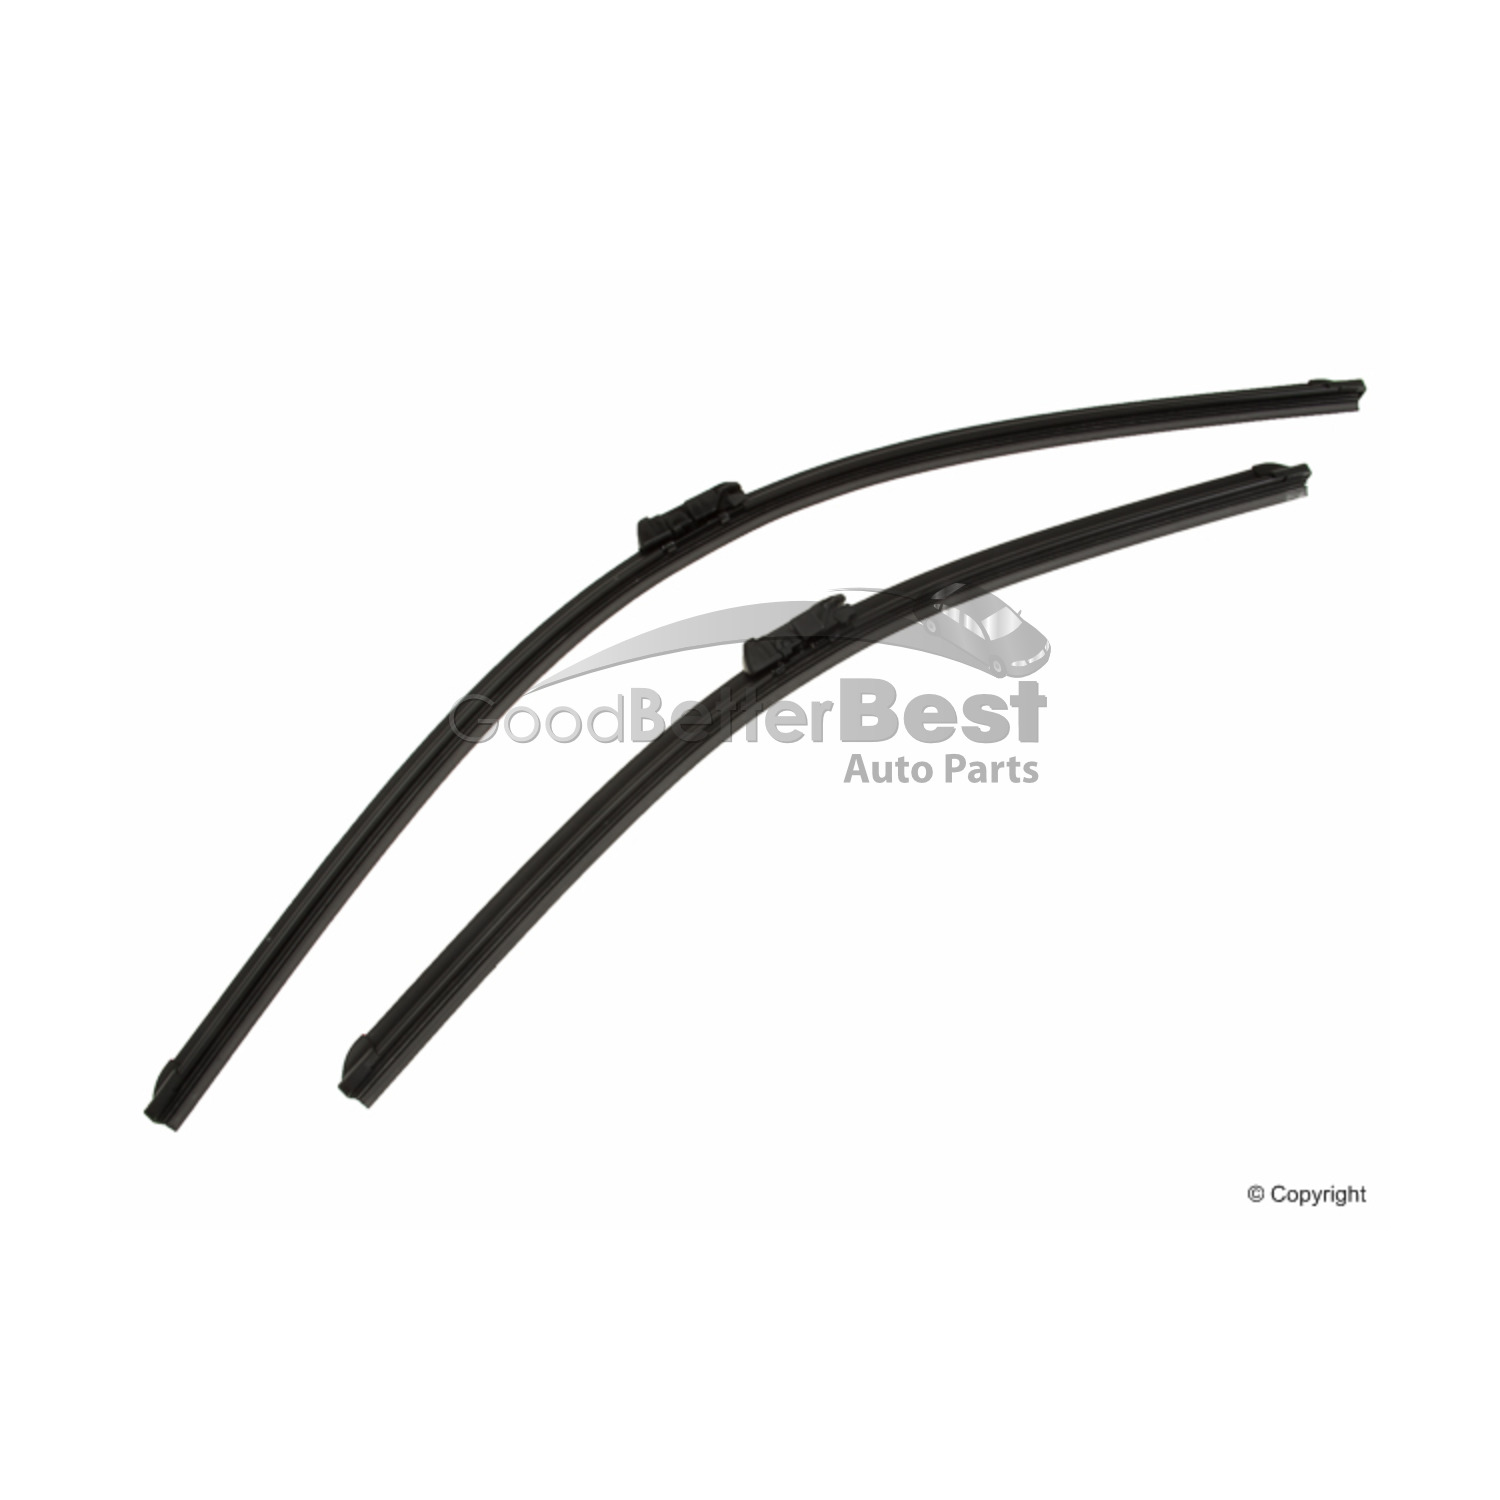 New Bosch Windshield Wiper Blade Set Front For